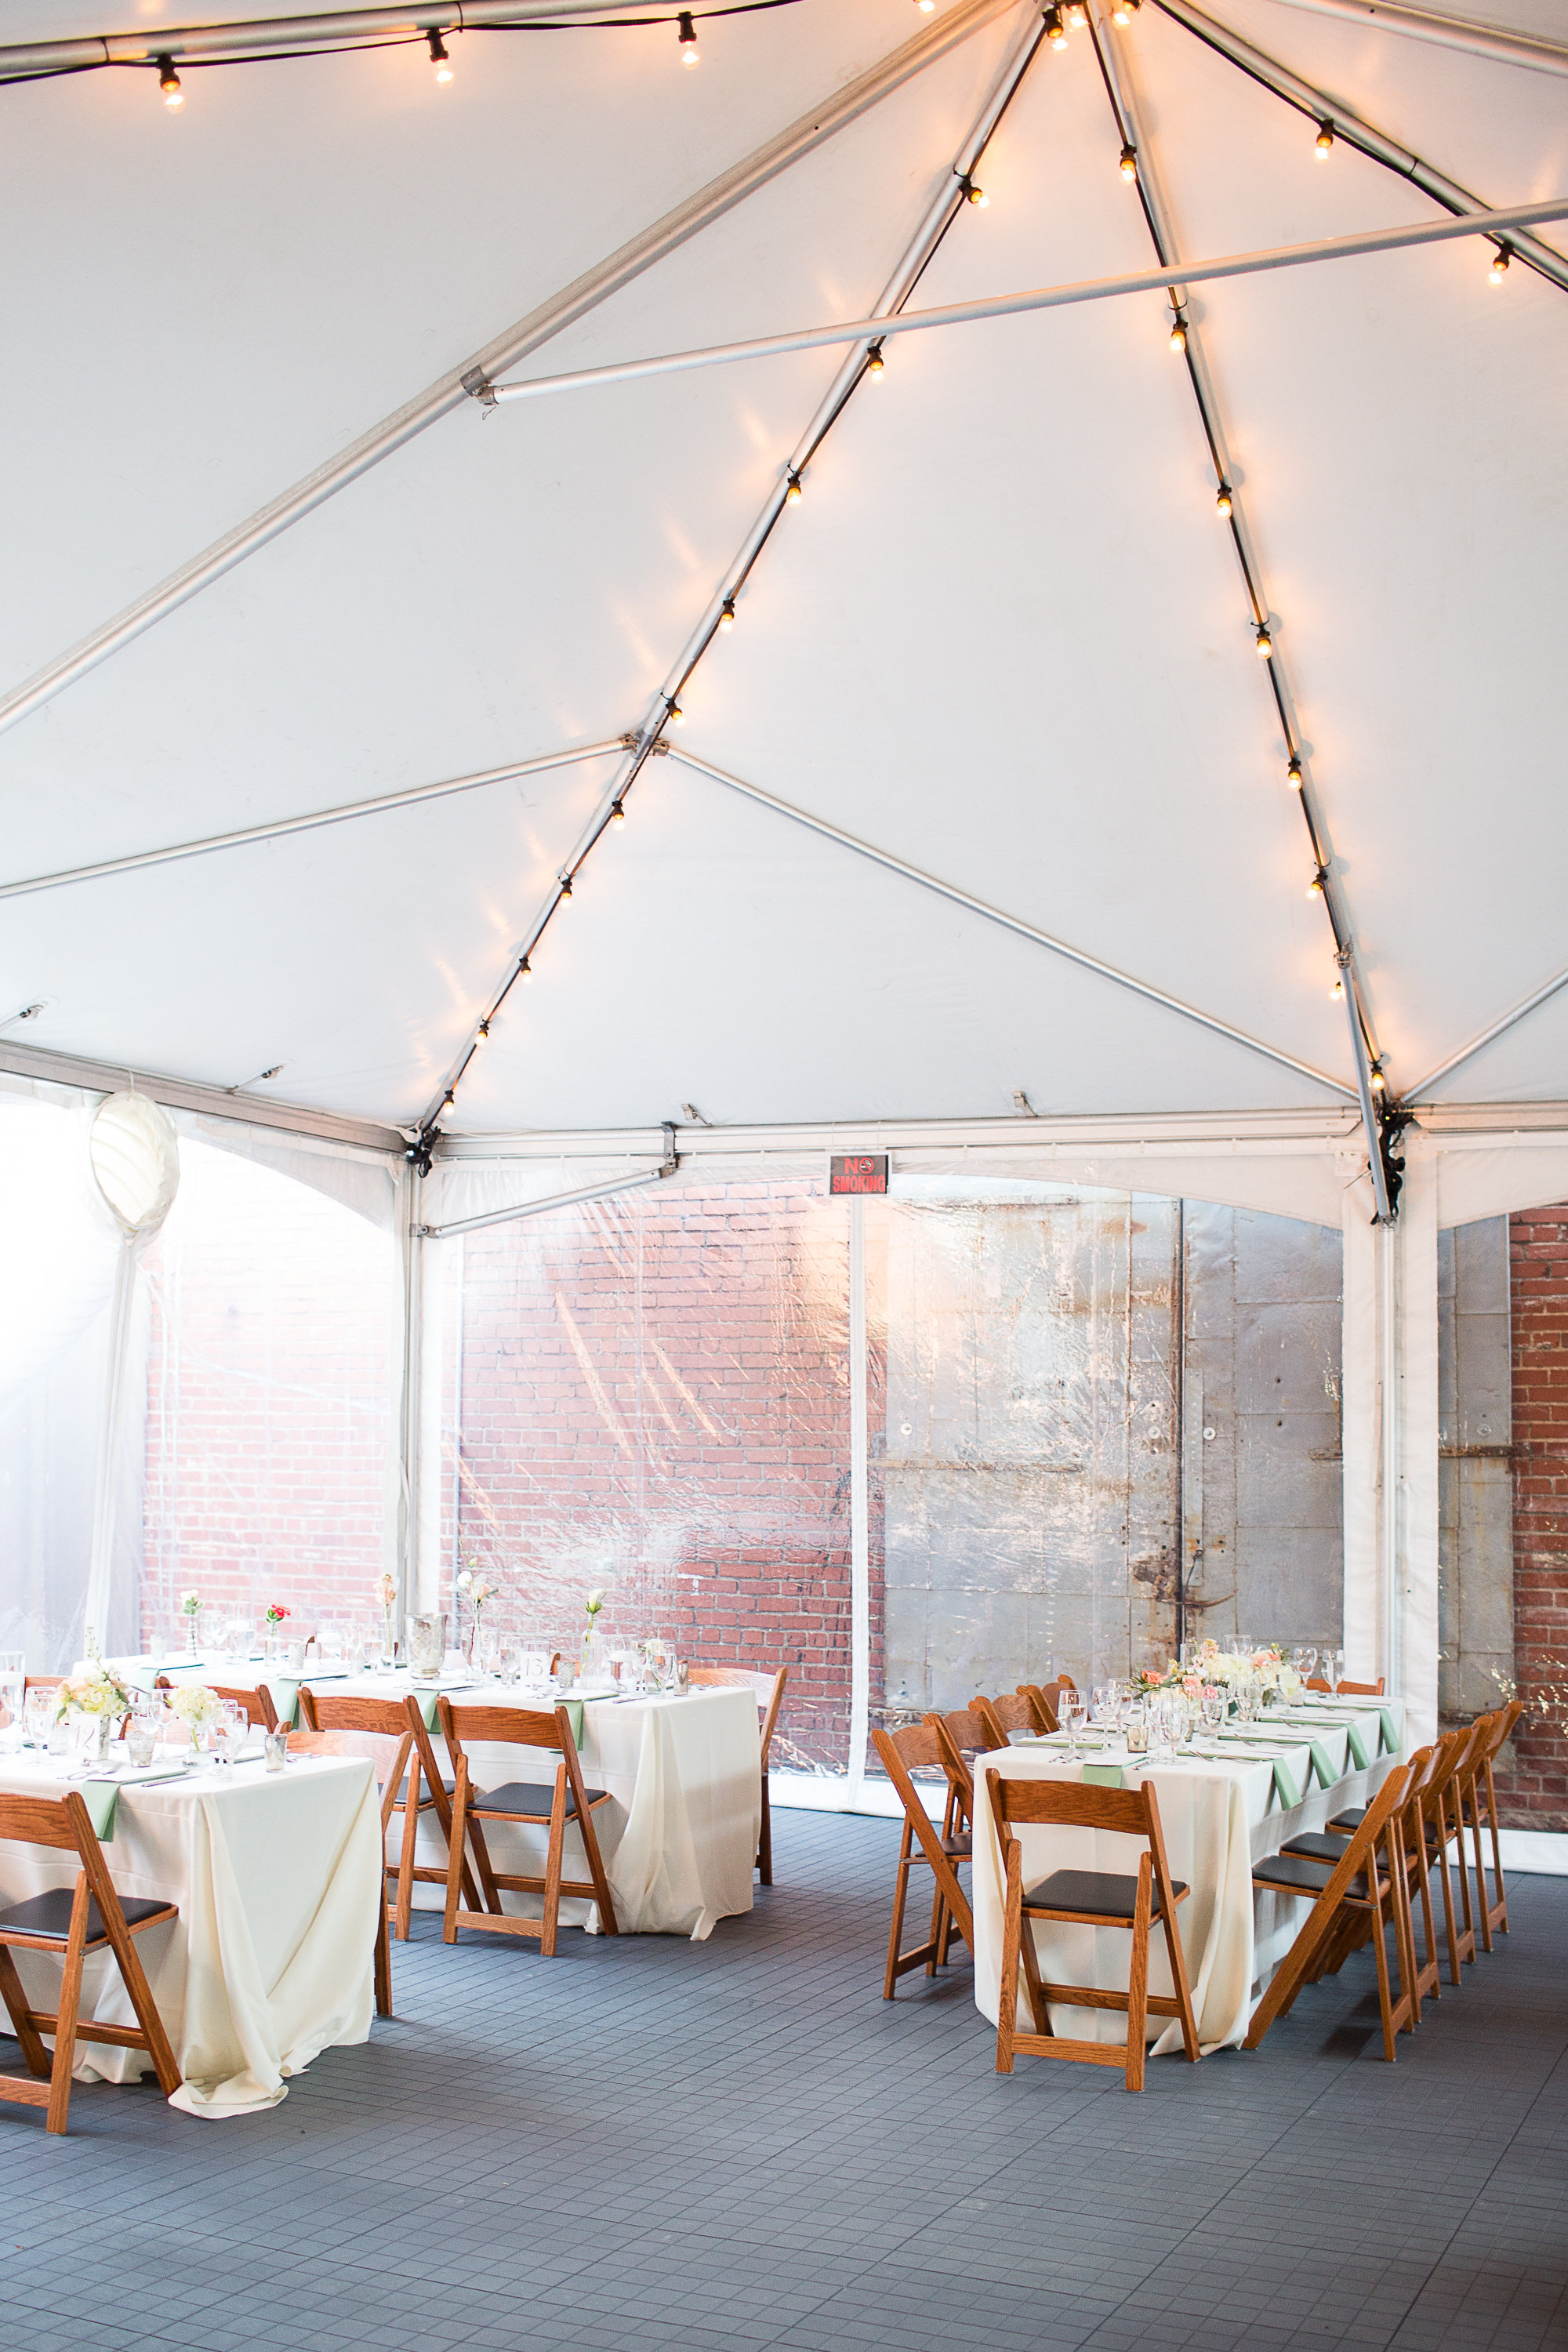 Tent with market lights and walls to contain heating and cooling. Flooring also shown here.